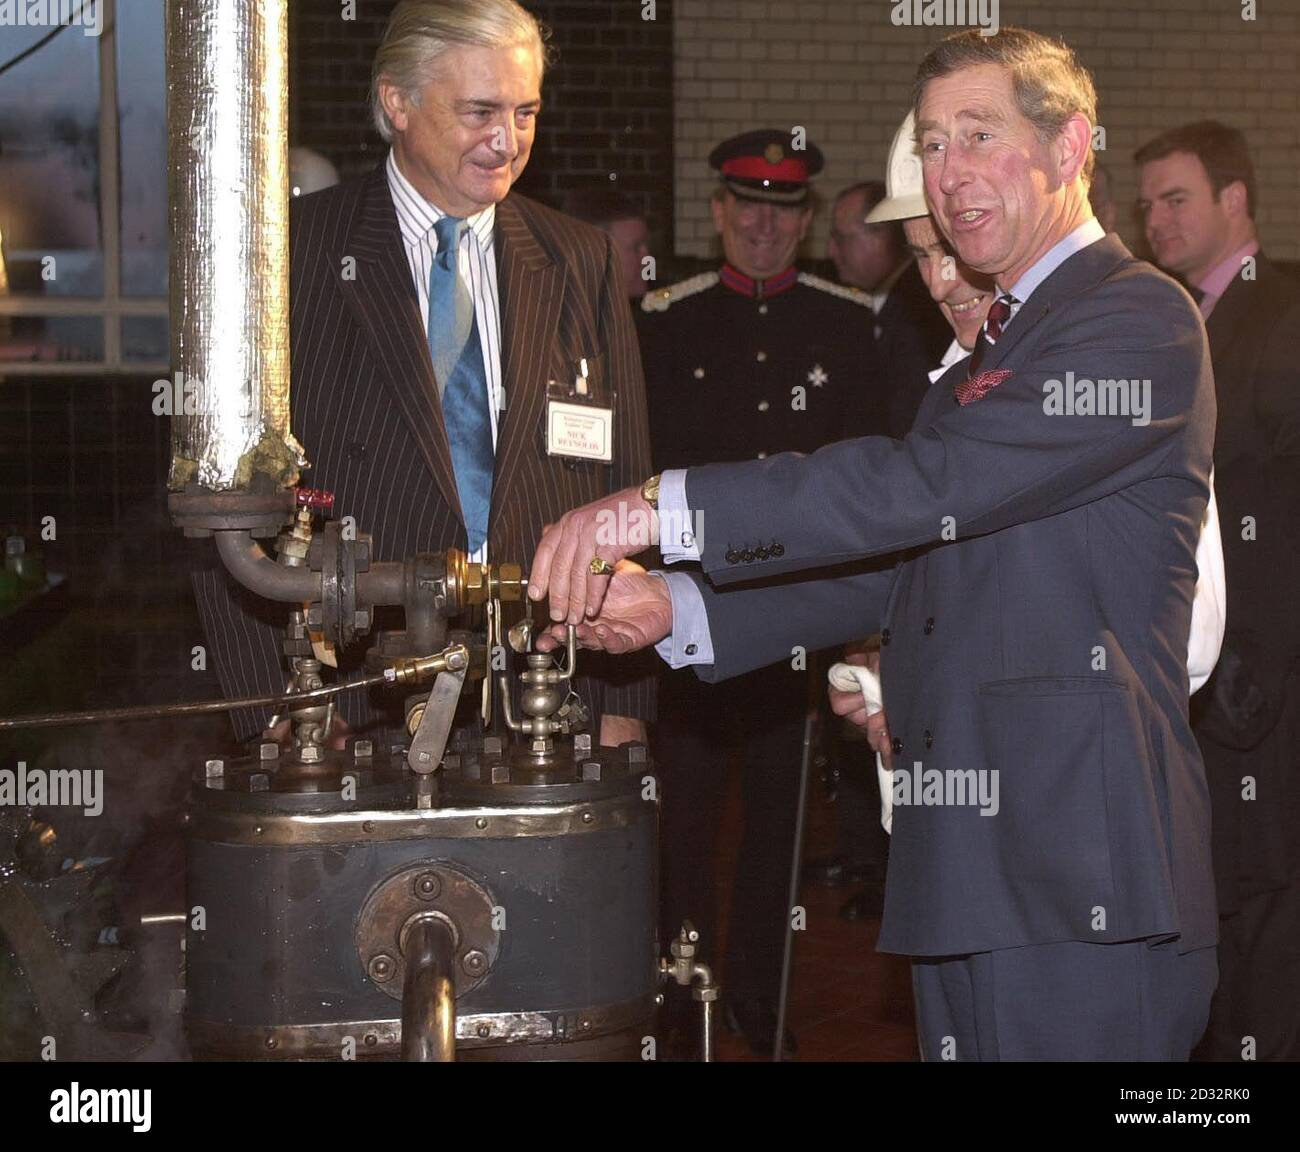 The Prince of Wales turns a valve to start the pumps,  during his visit to the Kempton Park Water Treatment Works in south west London, where he viewed a restored 62ft high engine which has been out of action for the past 20 years at the restored Pump House.   * The engines at Kempton's historic Pump House were the largest of their type in the UK, each operating 1,008 horse power with a crankshaft weighing 30 tons. Now that the restoration of the engine is complete, the  Kempton Great Engines plans to open the Pump House as a museum.  Stock Photo